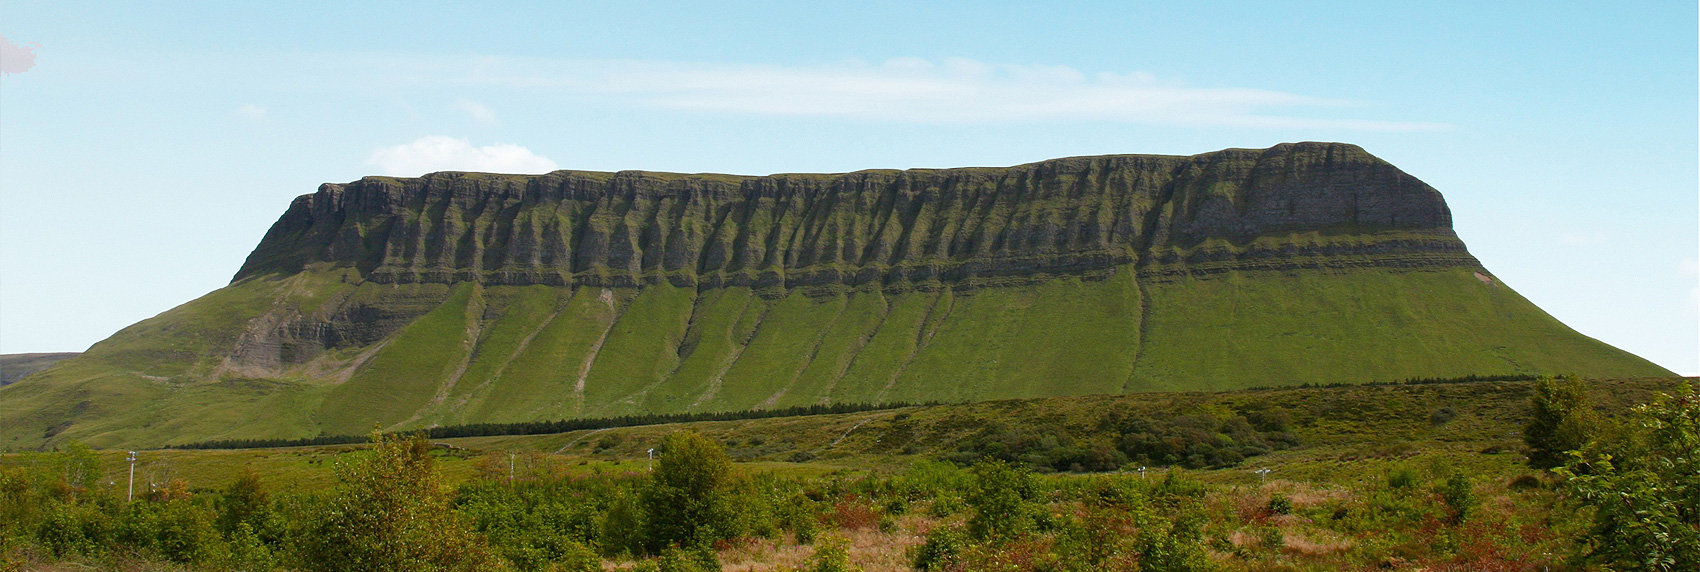 Ben Bulben Mountain, Co. Sligo, Ireland